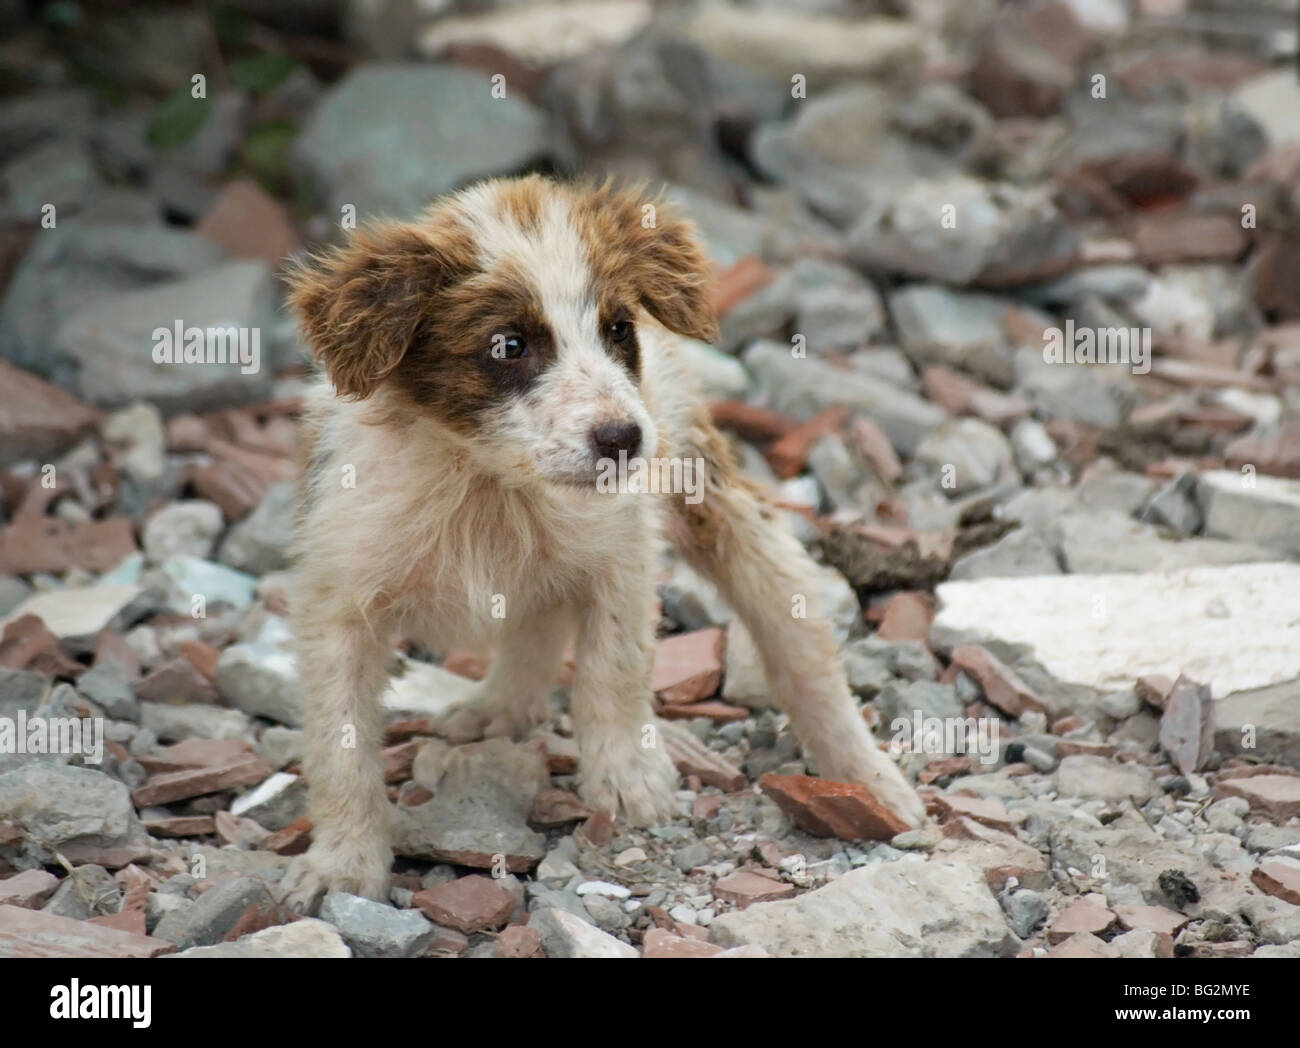 young dog - Stock Image